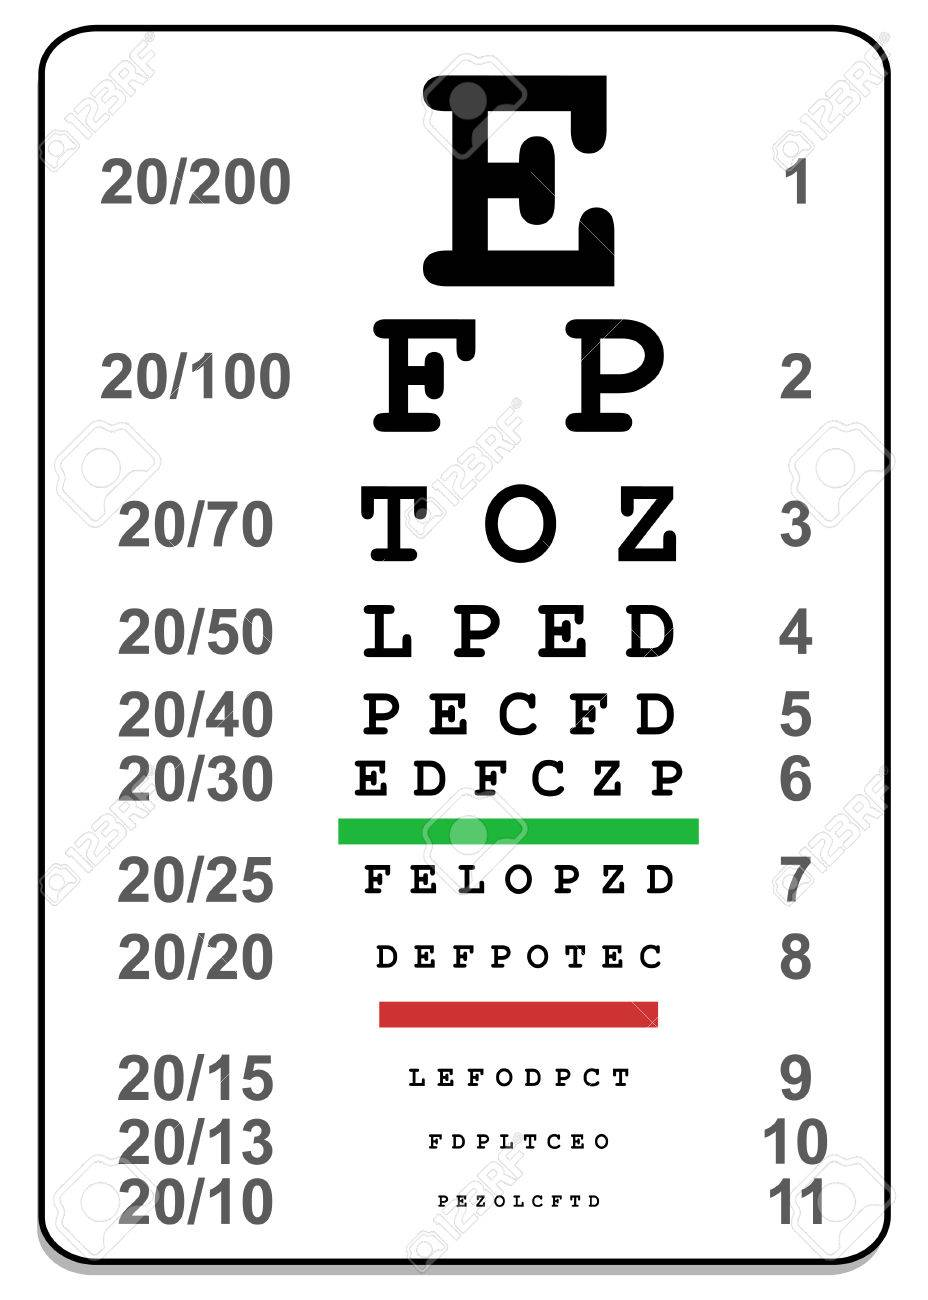 Jaeger 1 eye chart image collections chart design ideas eye test for driver mozkoloak on this page what 2020 means tumbling e eye chart jaeger geenschuldenfo Gallery